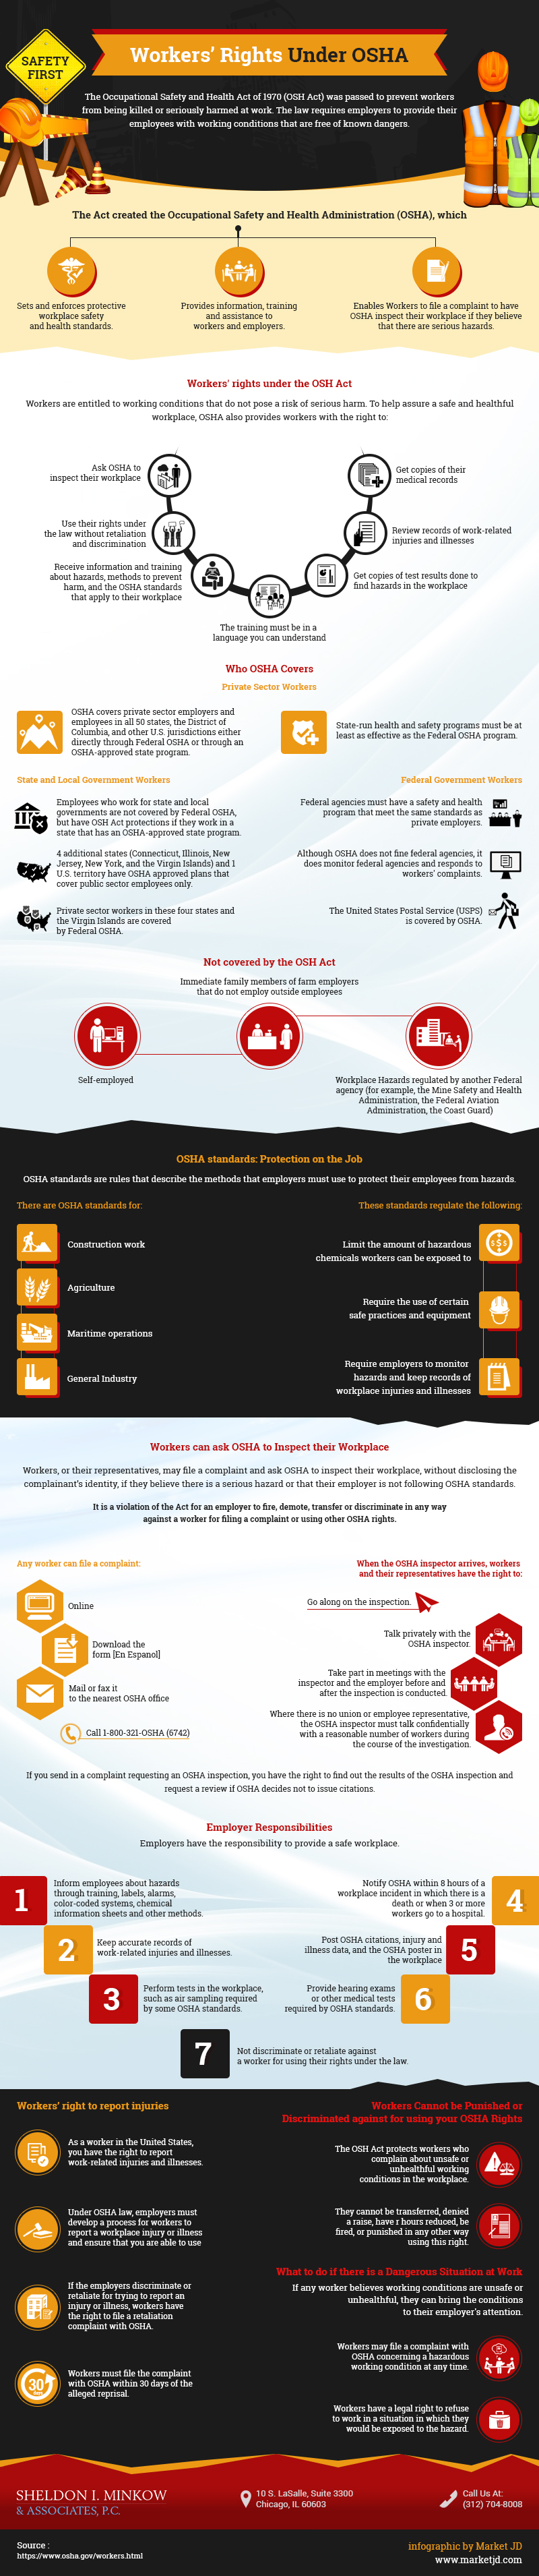 The occupational safety and health act of 1970 osh act